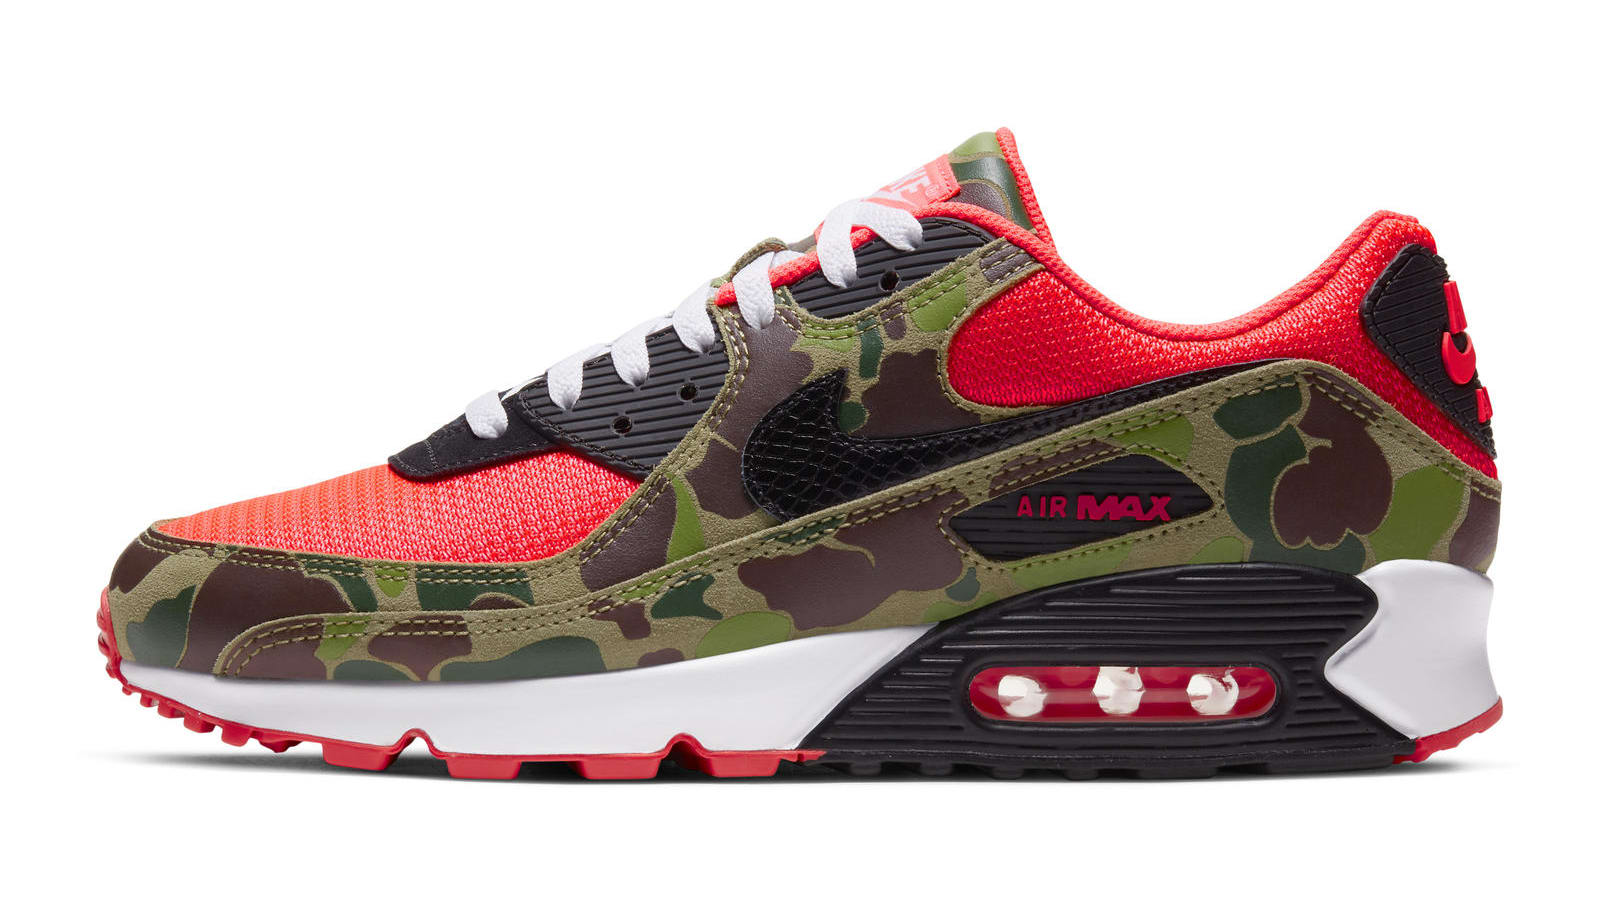 Nike Air Max 90 'Infrared Duck Camo'